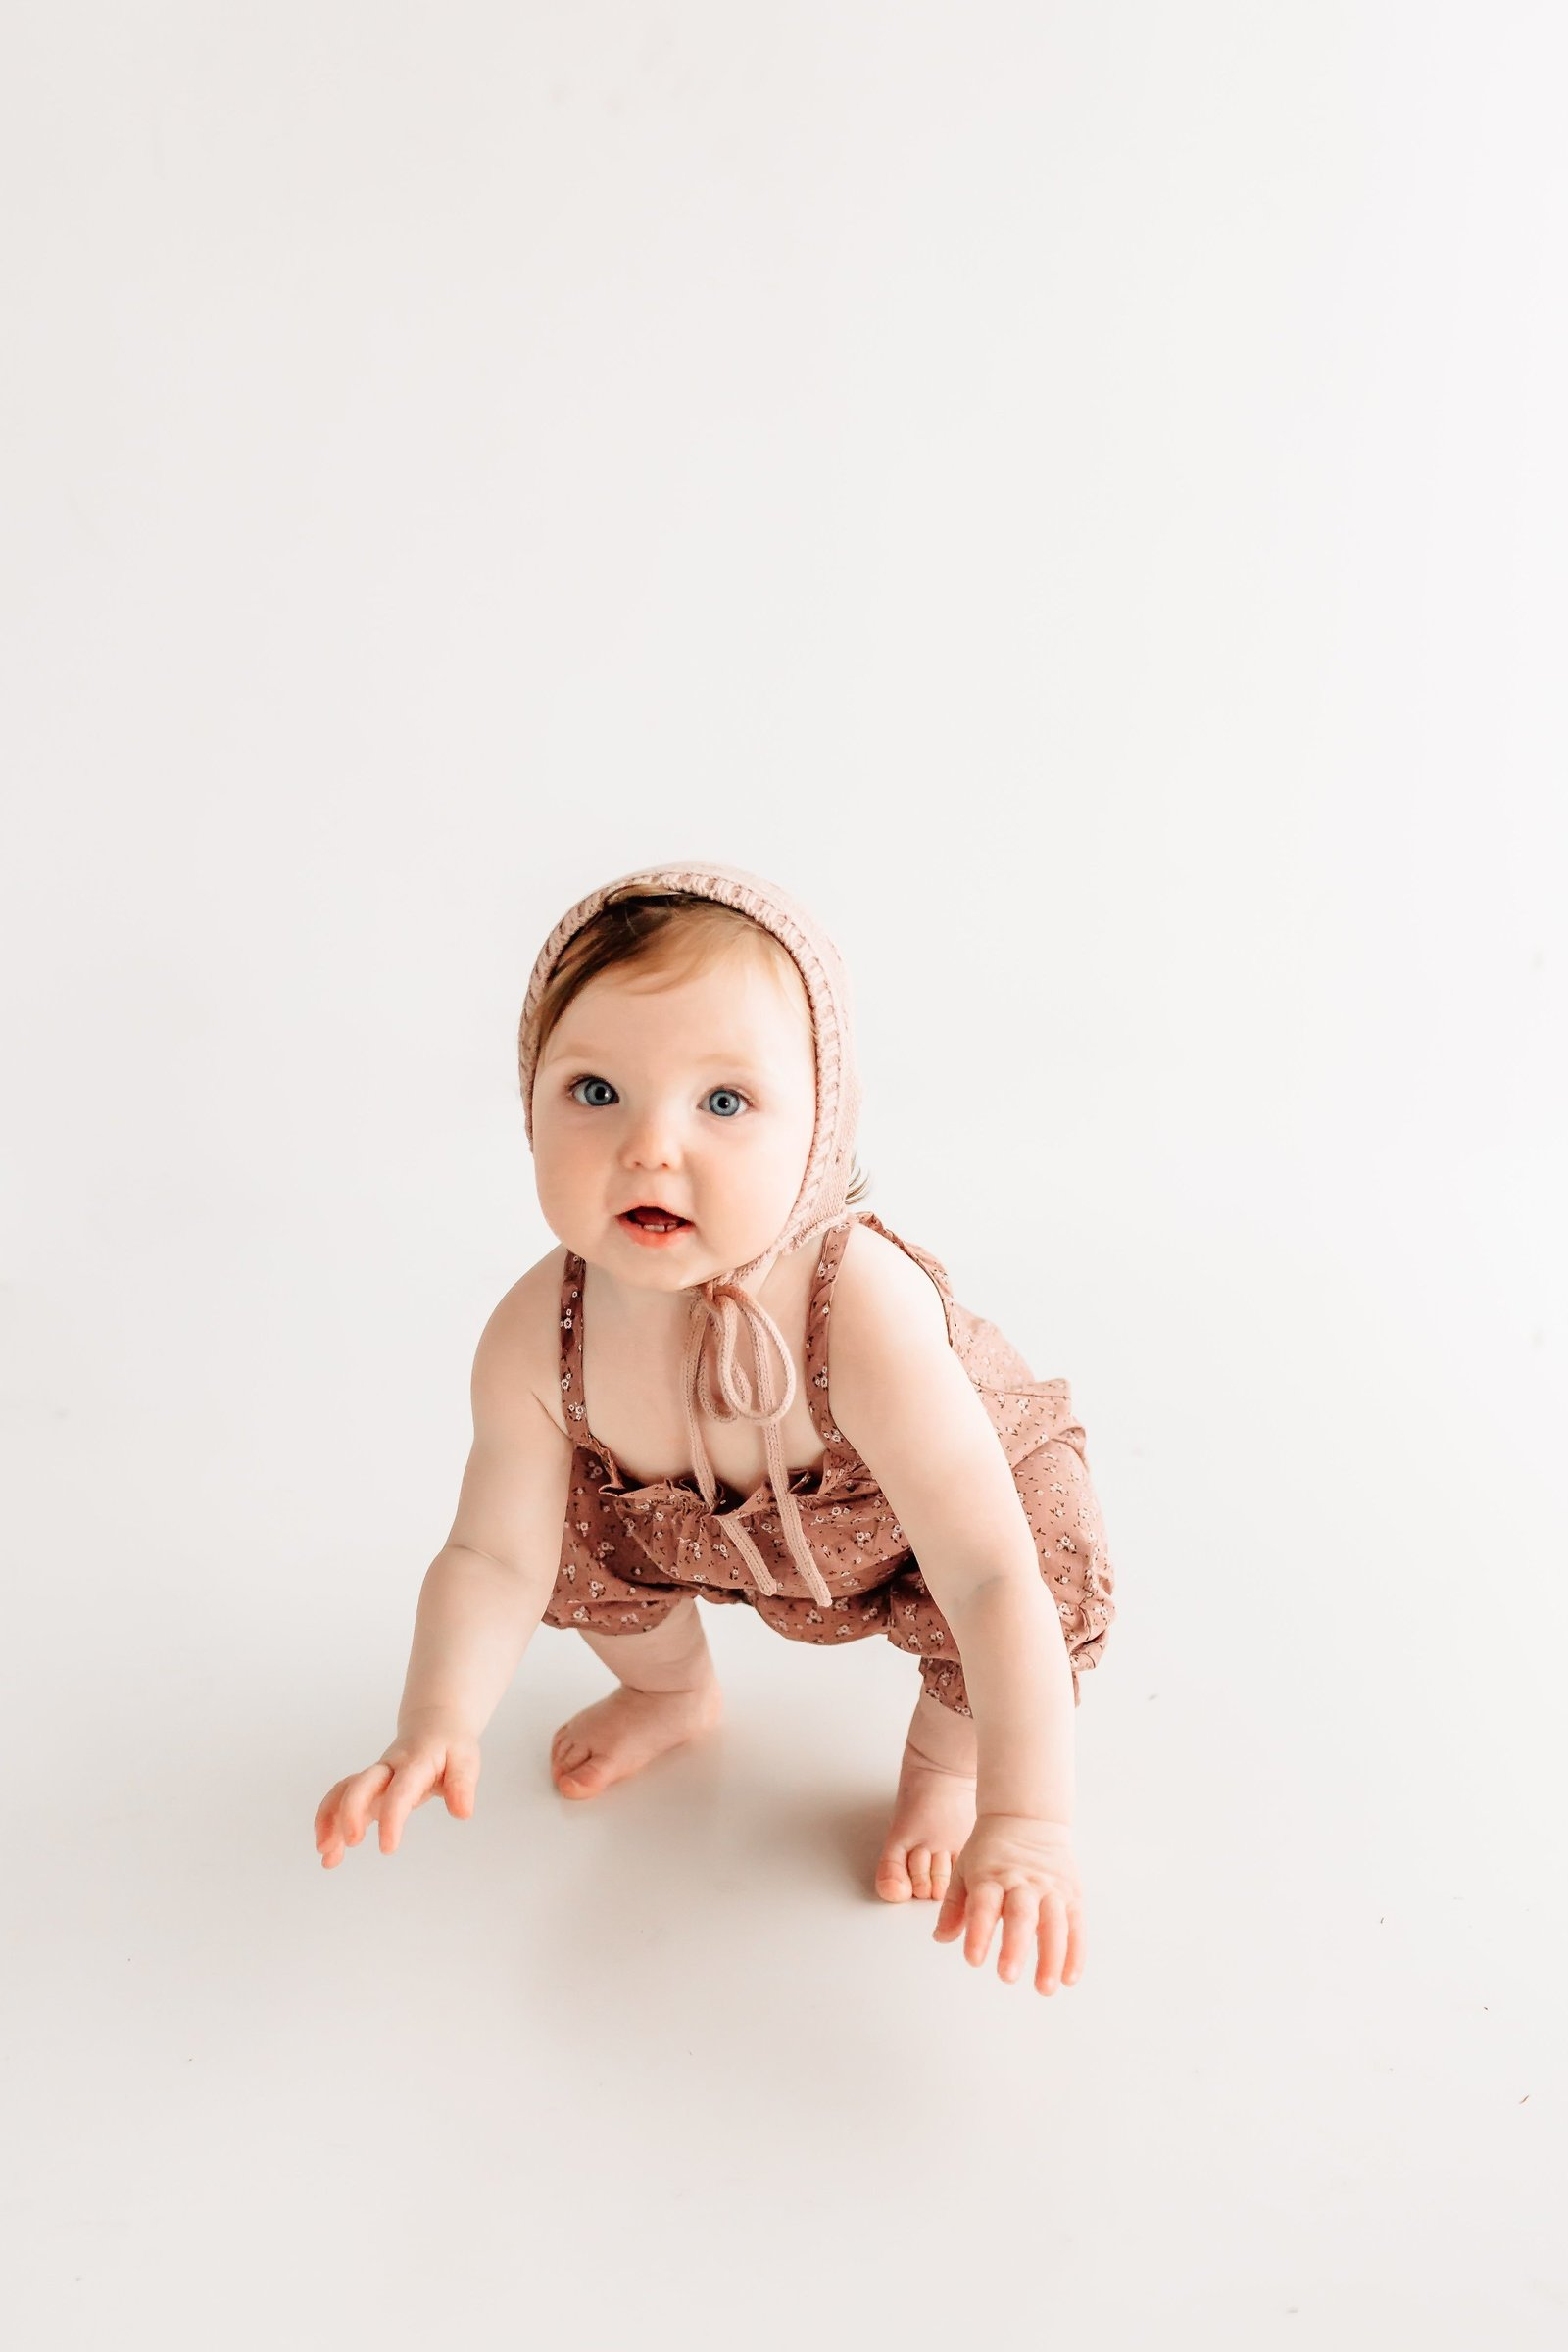 St_Louis_Baby_Photographer_Kelly_Laramore_Photography_57